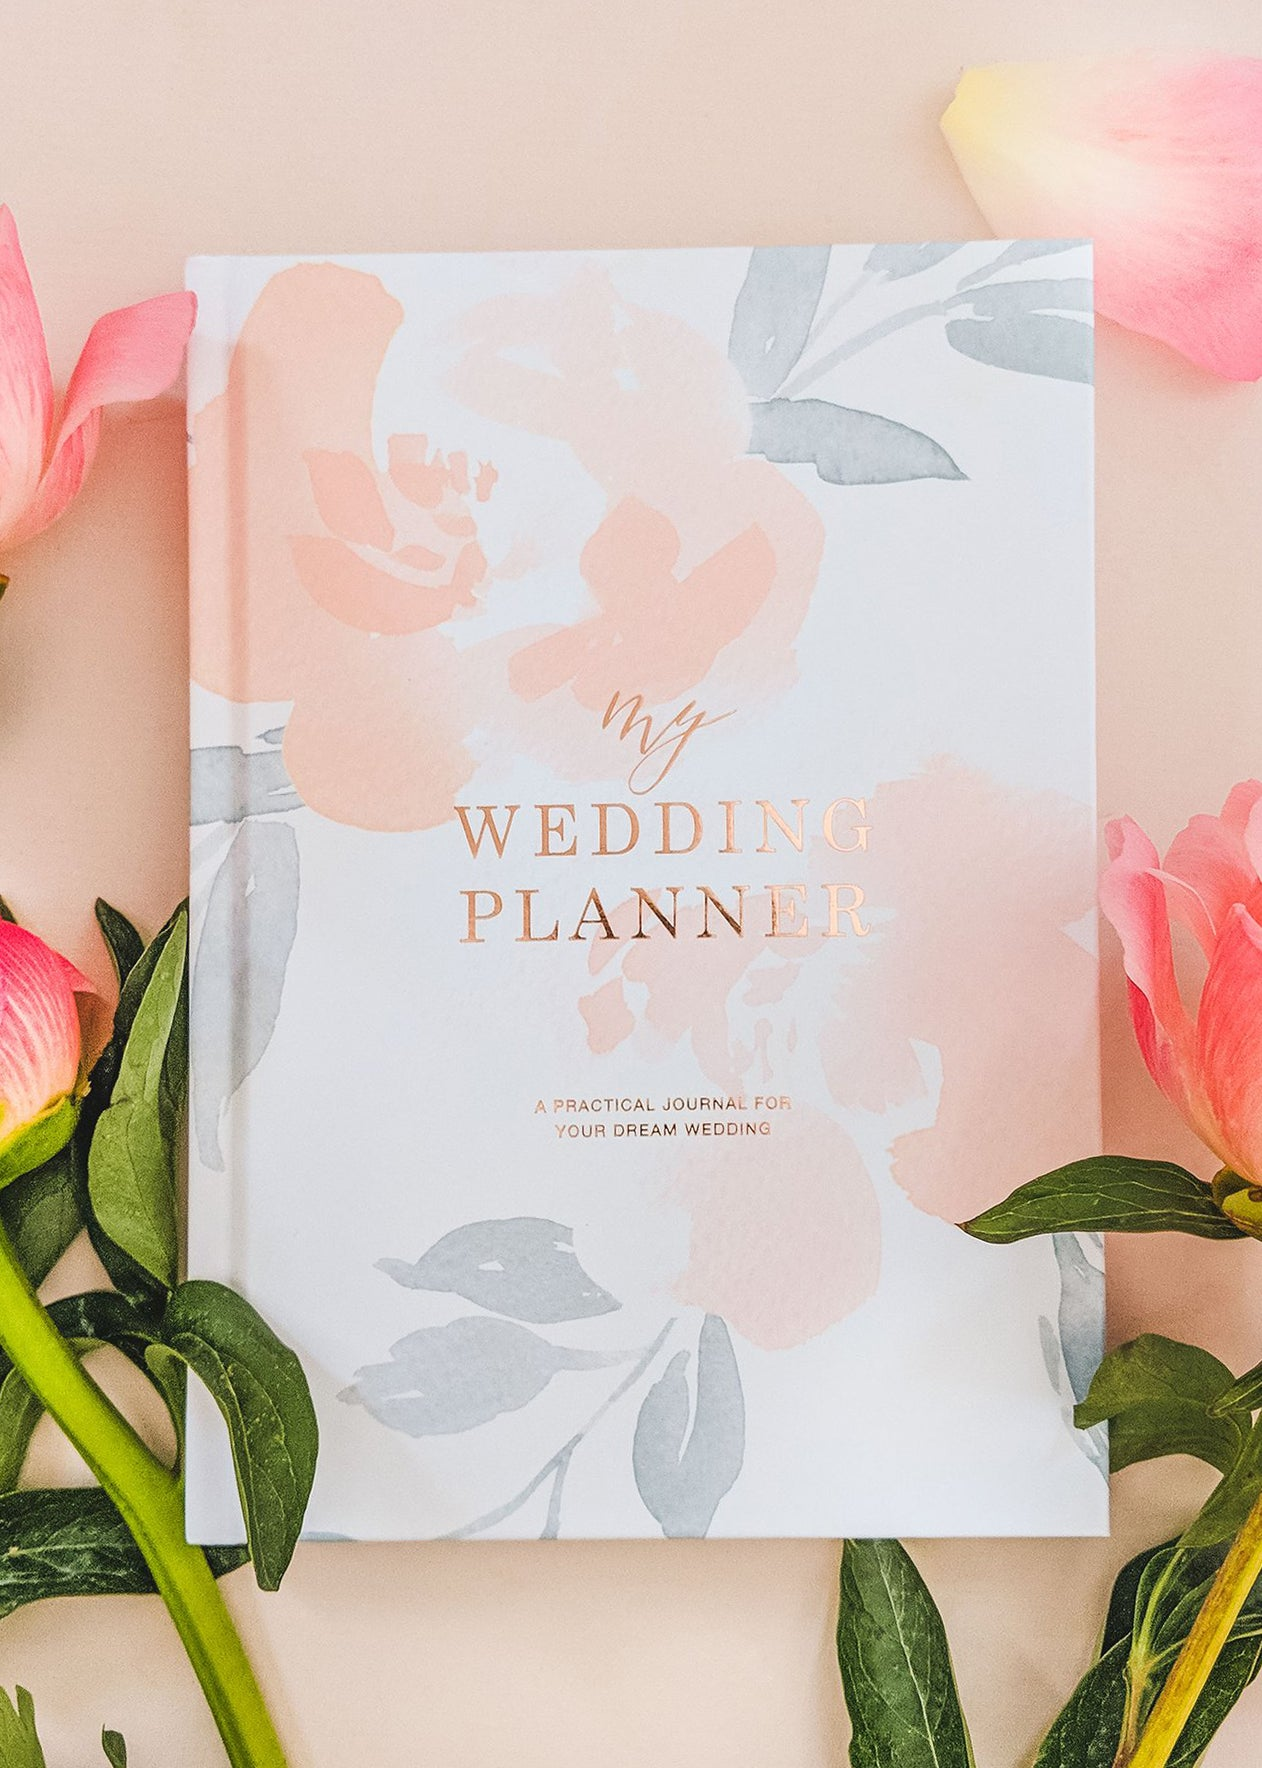 My Wedding Planner - Floral, Bridal Gifts, Blush & Gold - Eternal Bridal